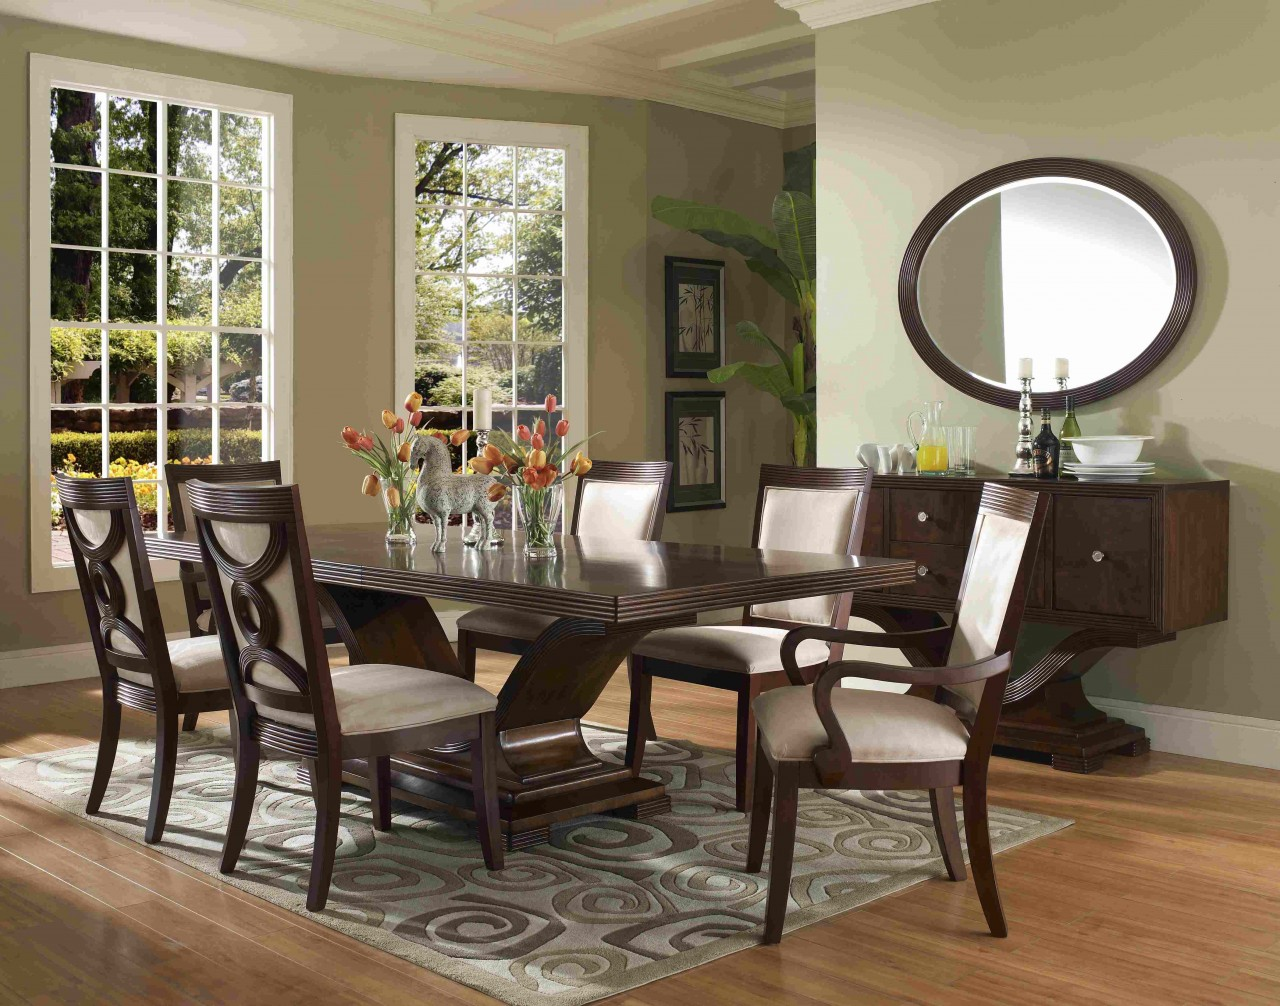 Contemporary Formal Dining Room Sets perfect formal dining room sets for 8 homesfeed. the formal dining